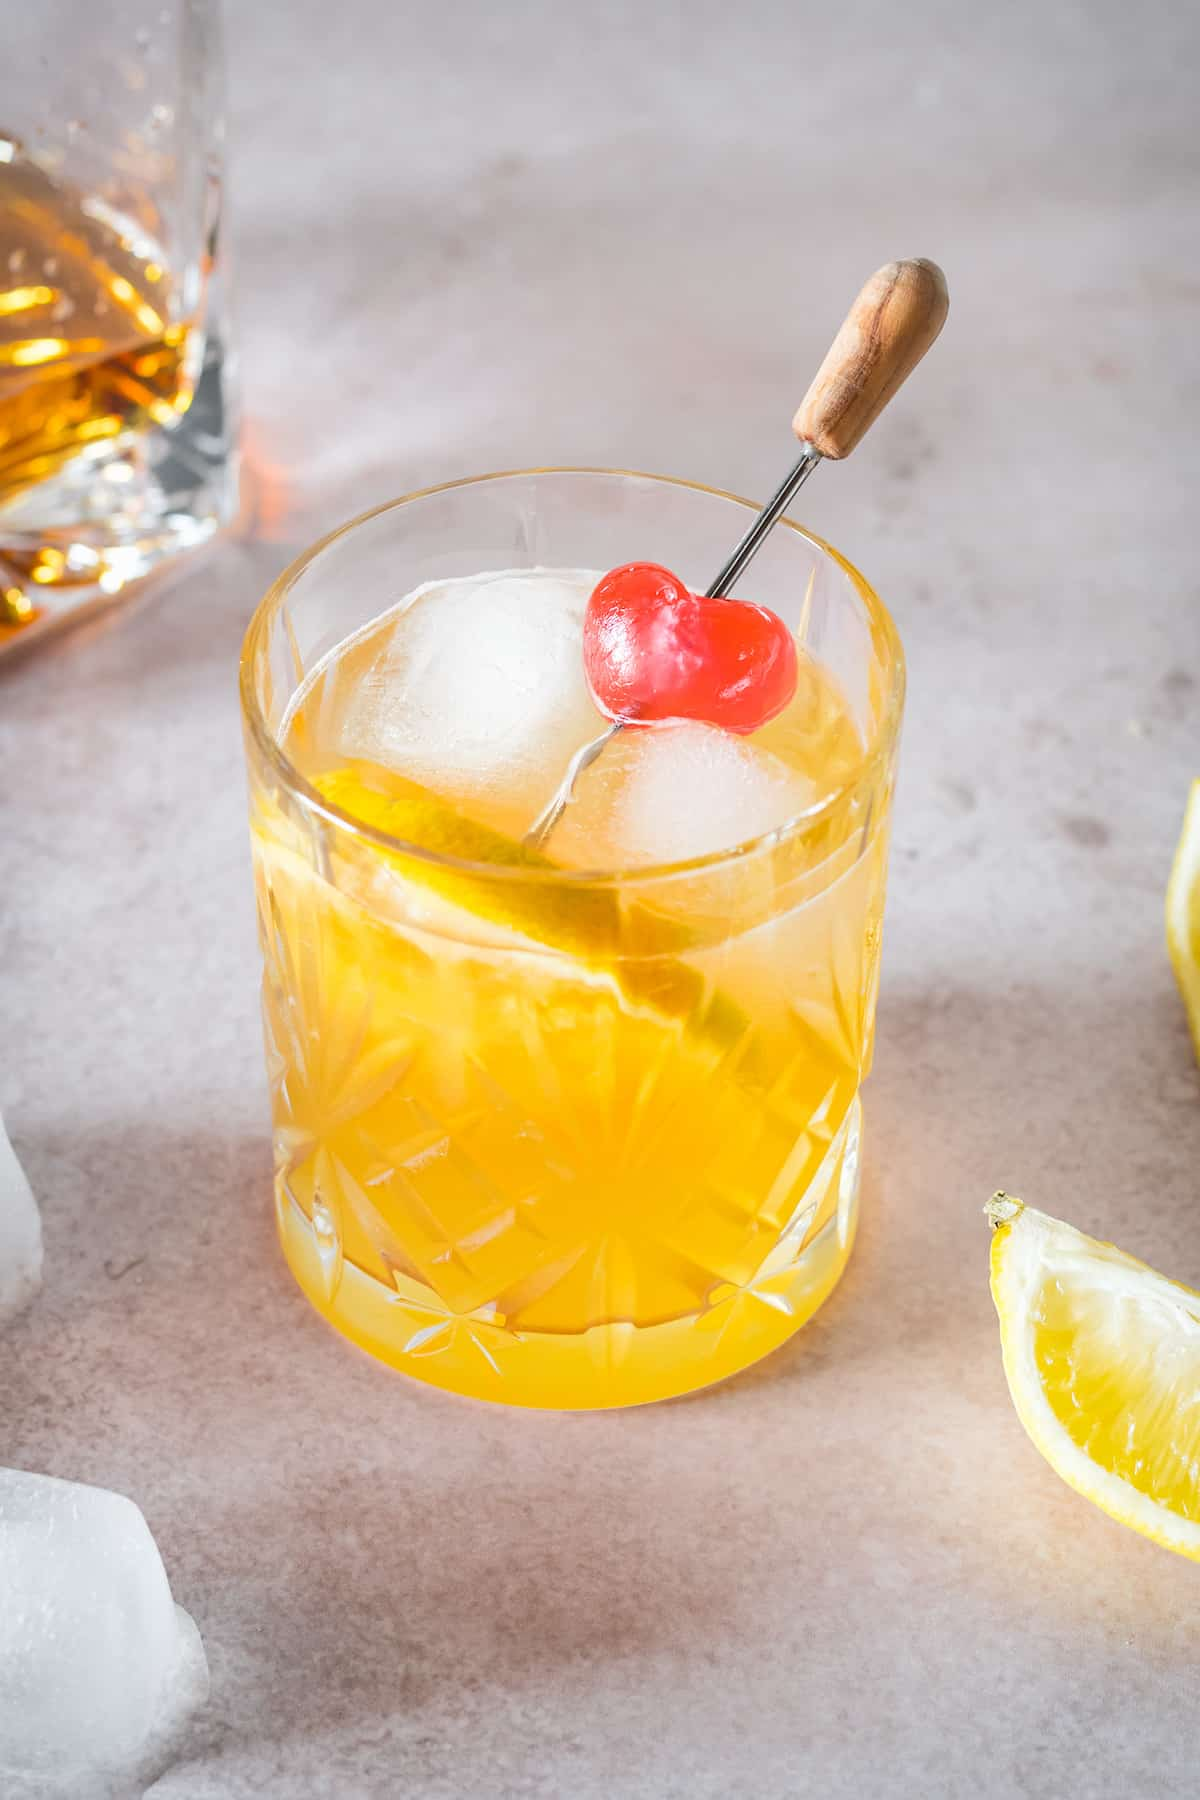 A whiskey sour garnished with a cherry and orange slice